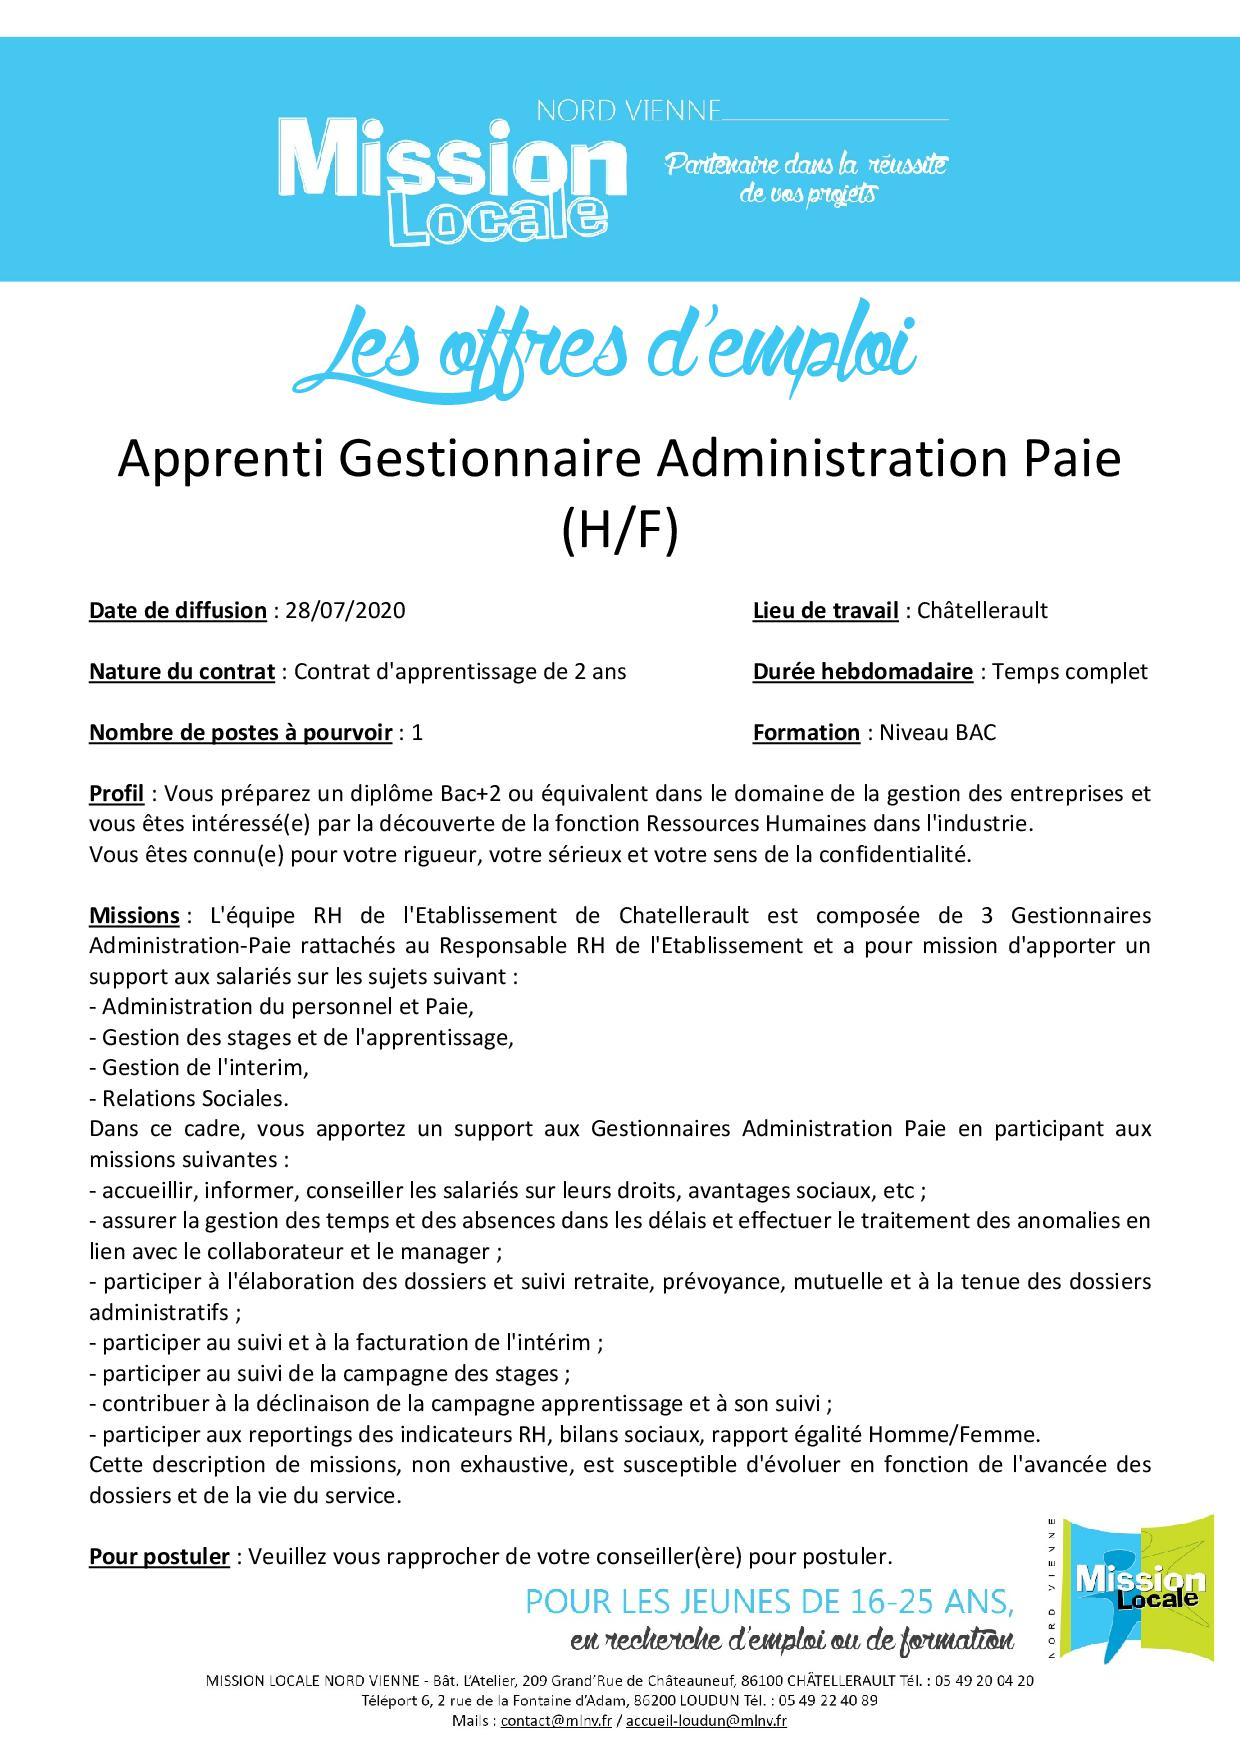 Apprenti Gestionnaire Administration Paie (H/F)